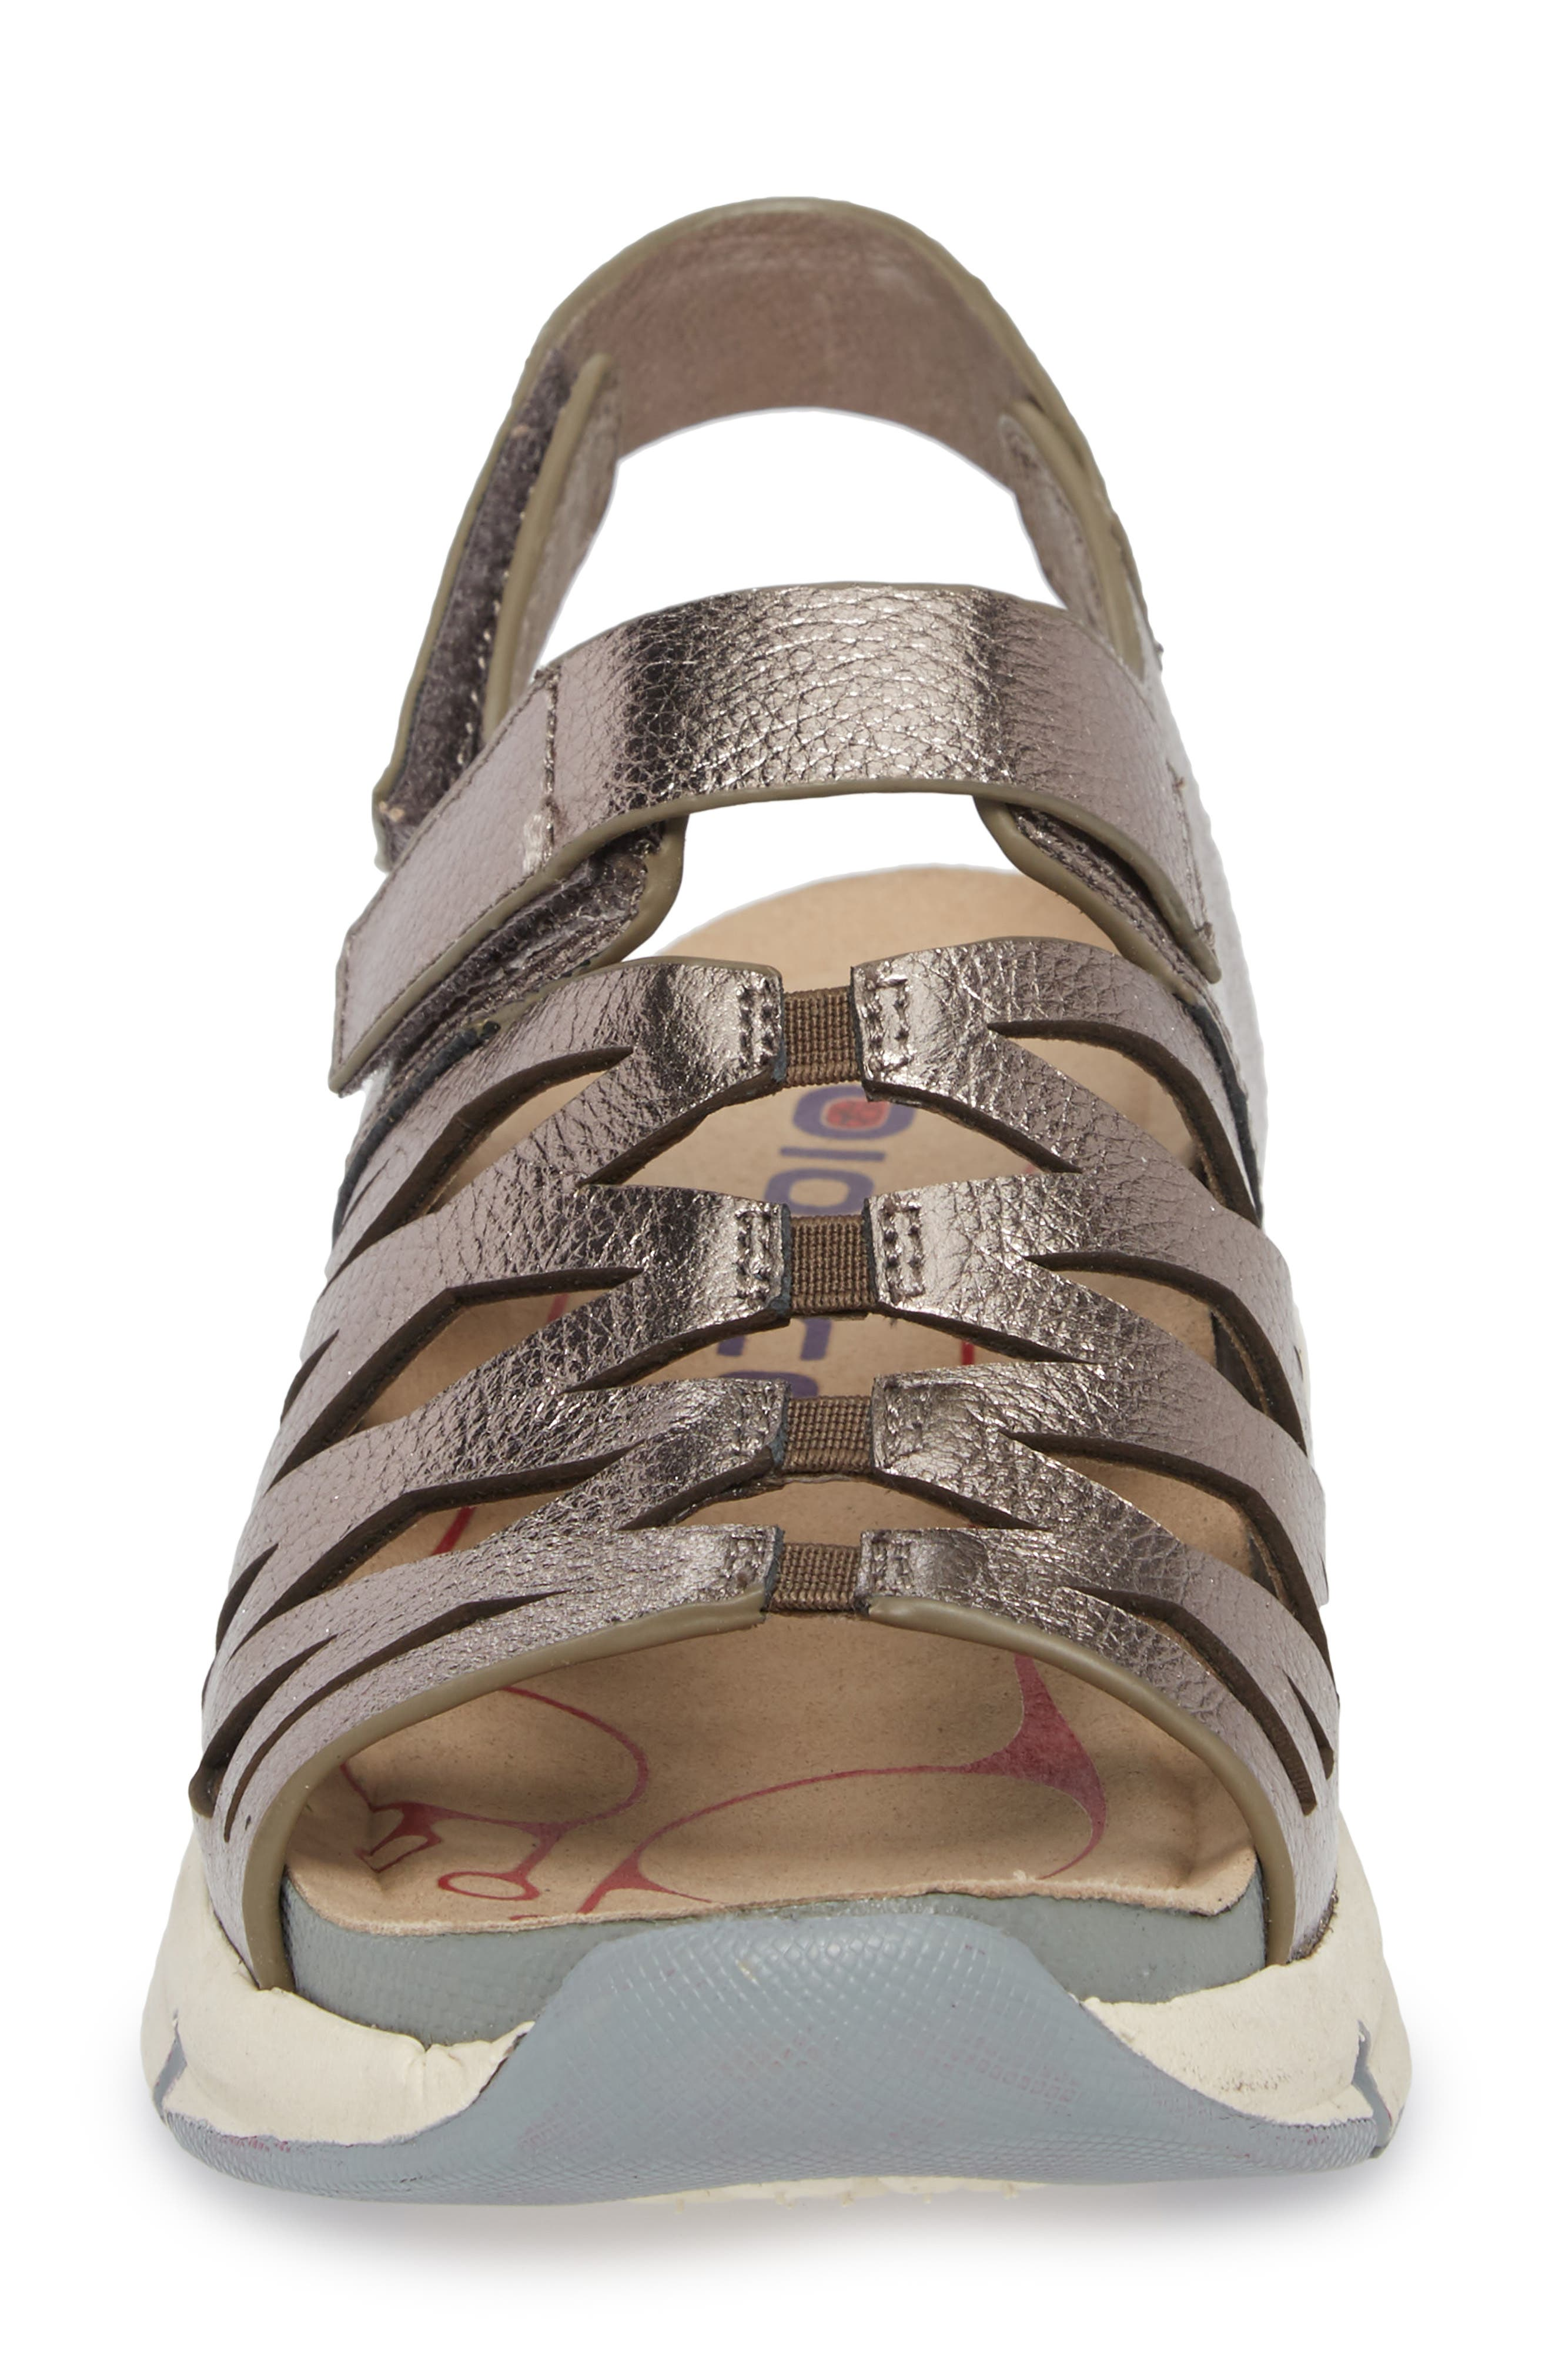 Ossipee Sandal,                             Alternate thumbnail 4, color,                             Anthracite Leather